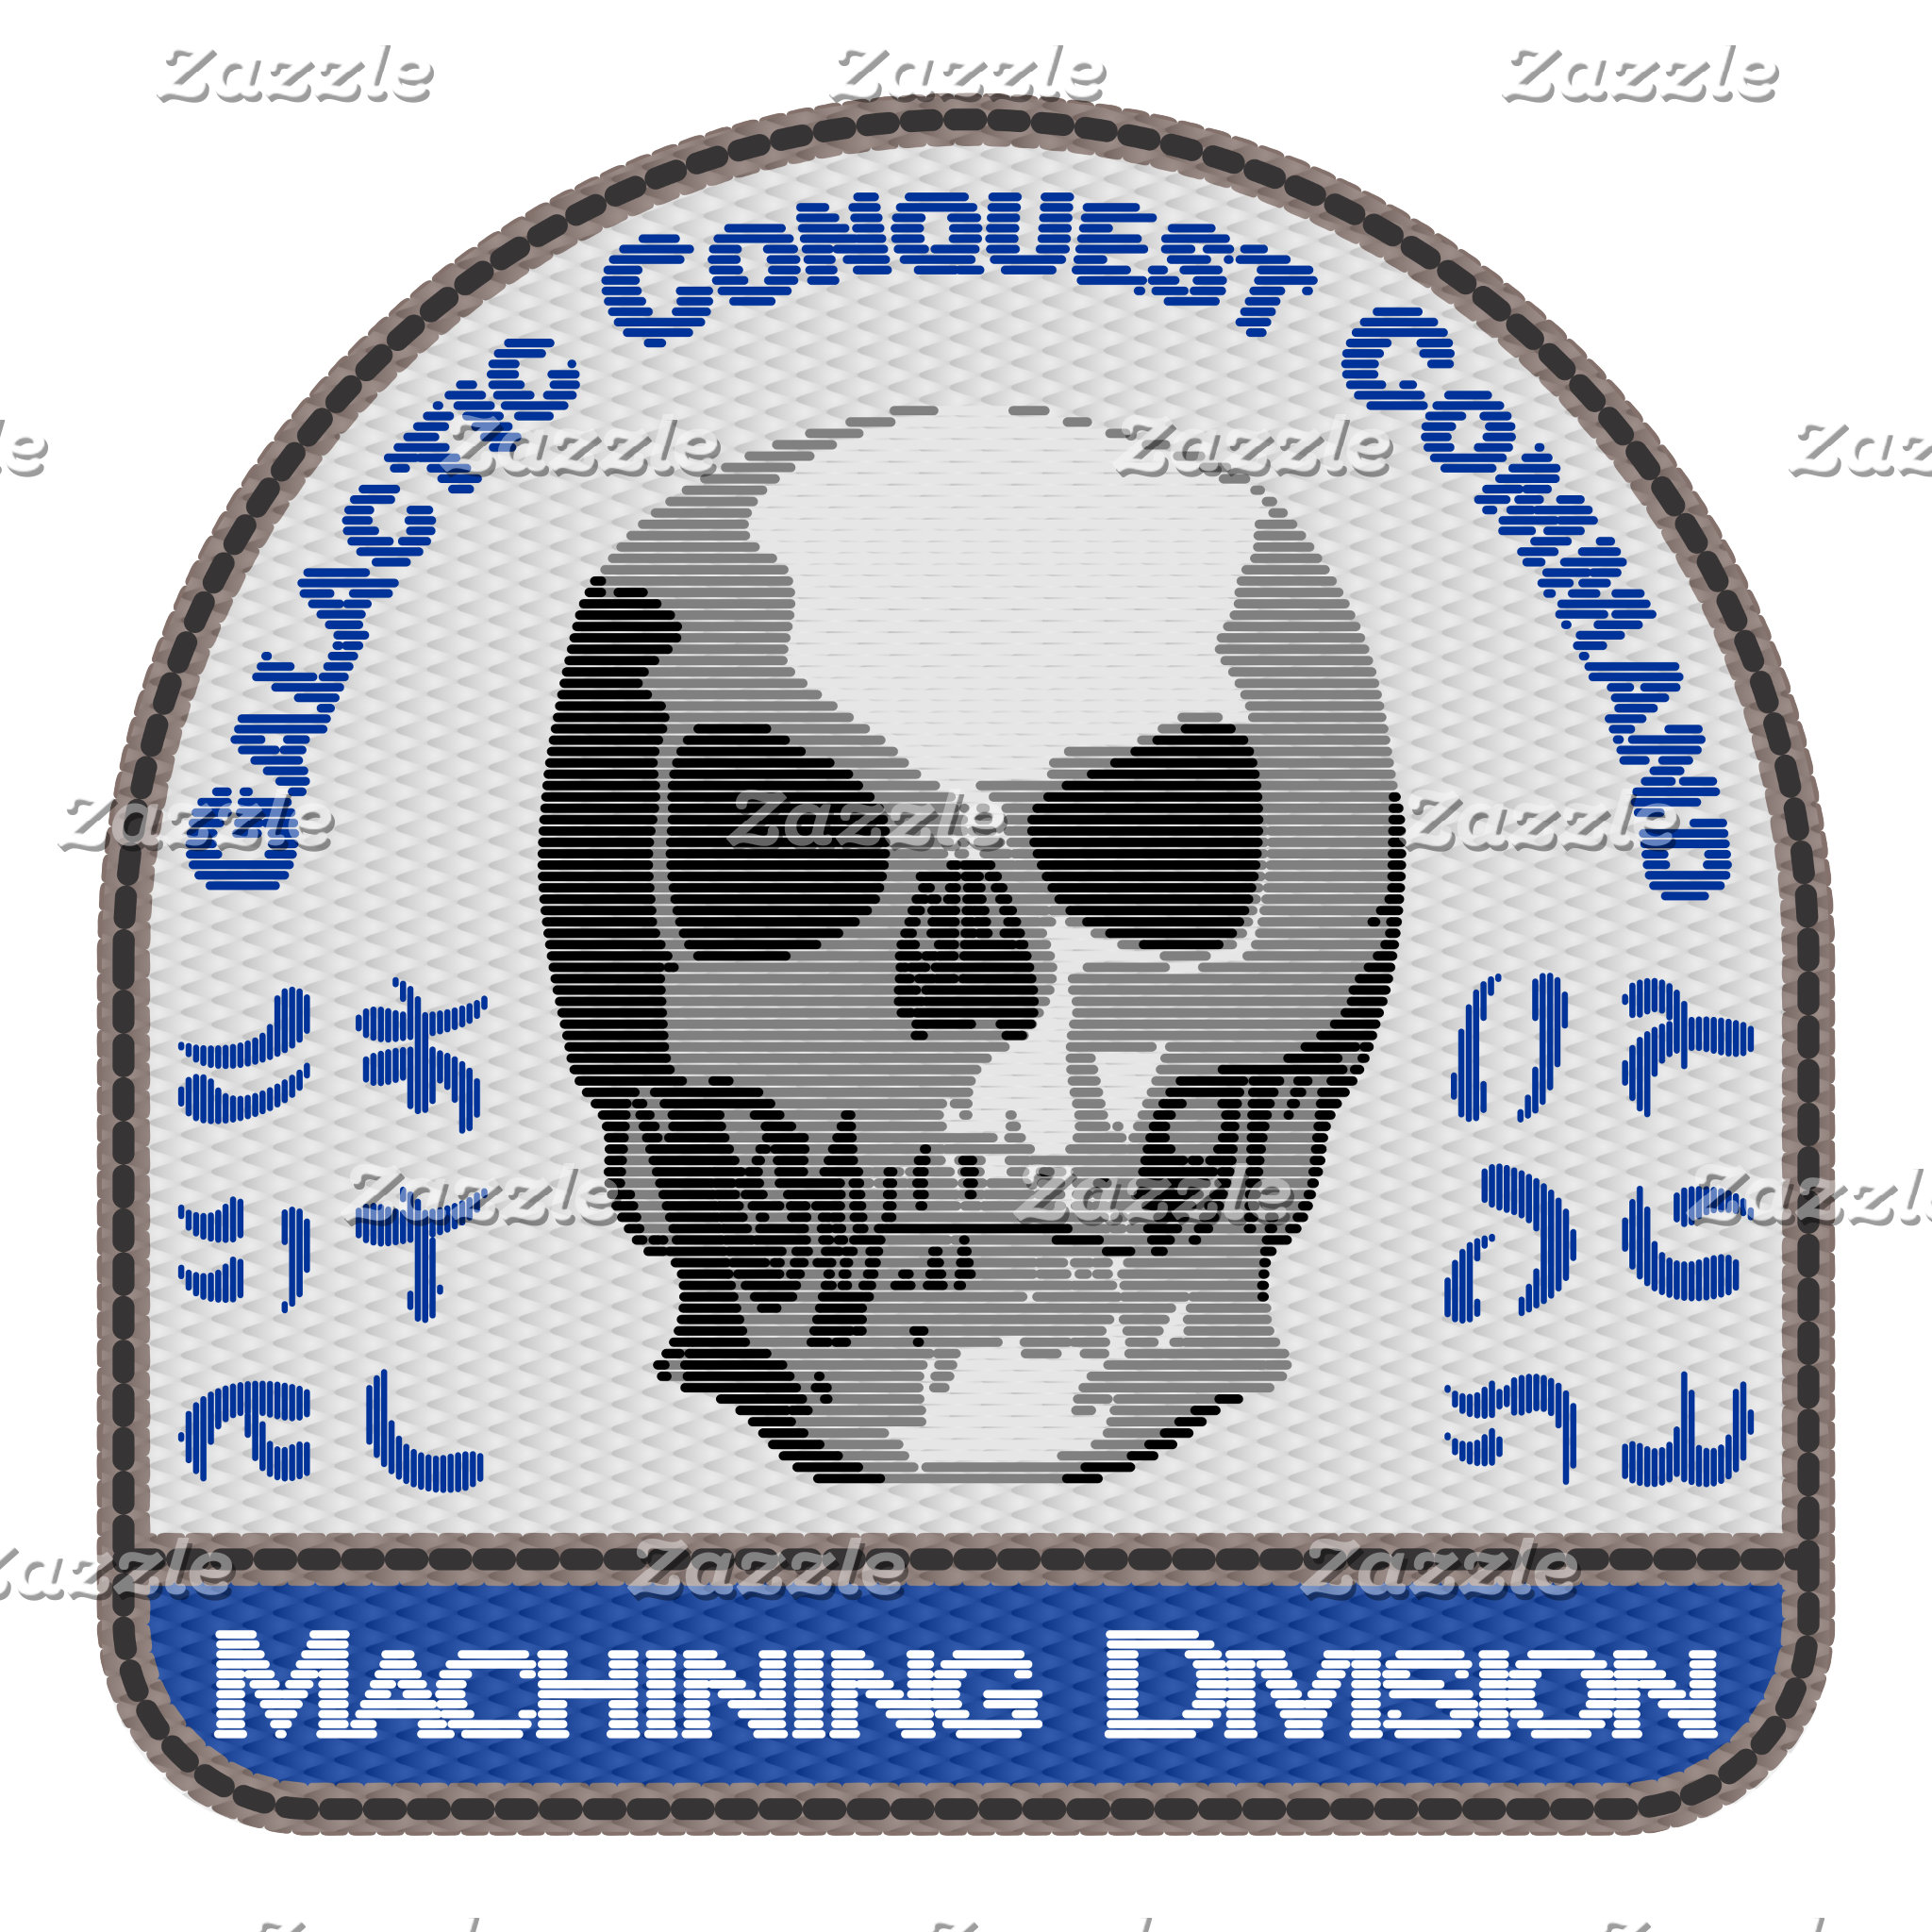 Machining Division - Galactic Conquest Command